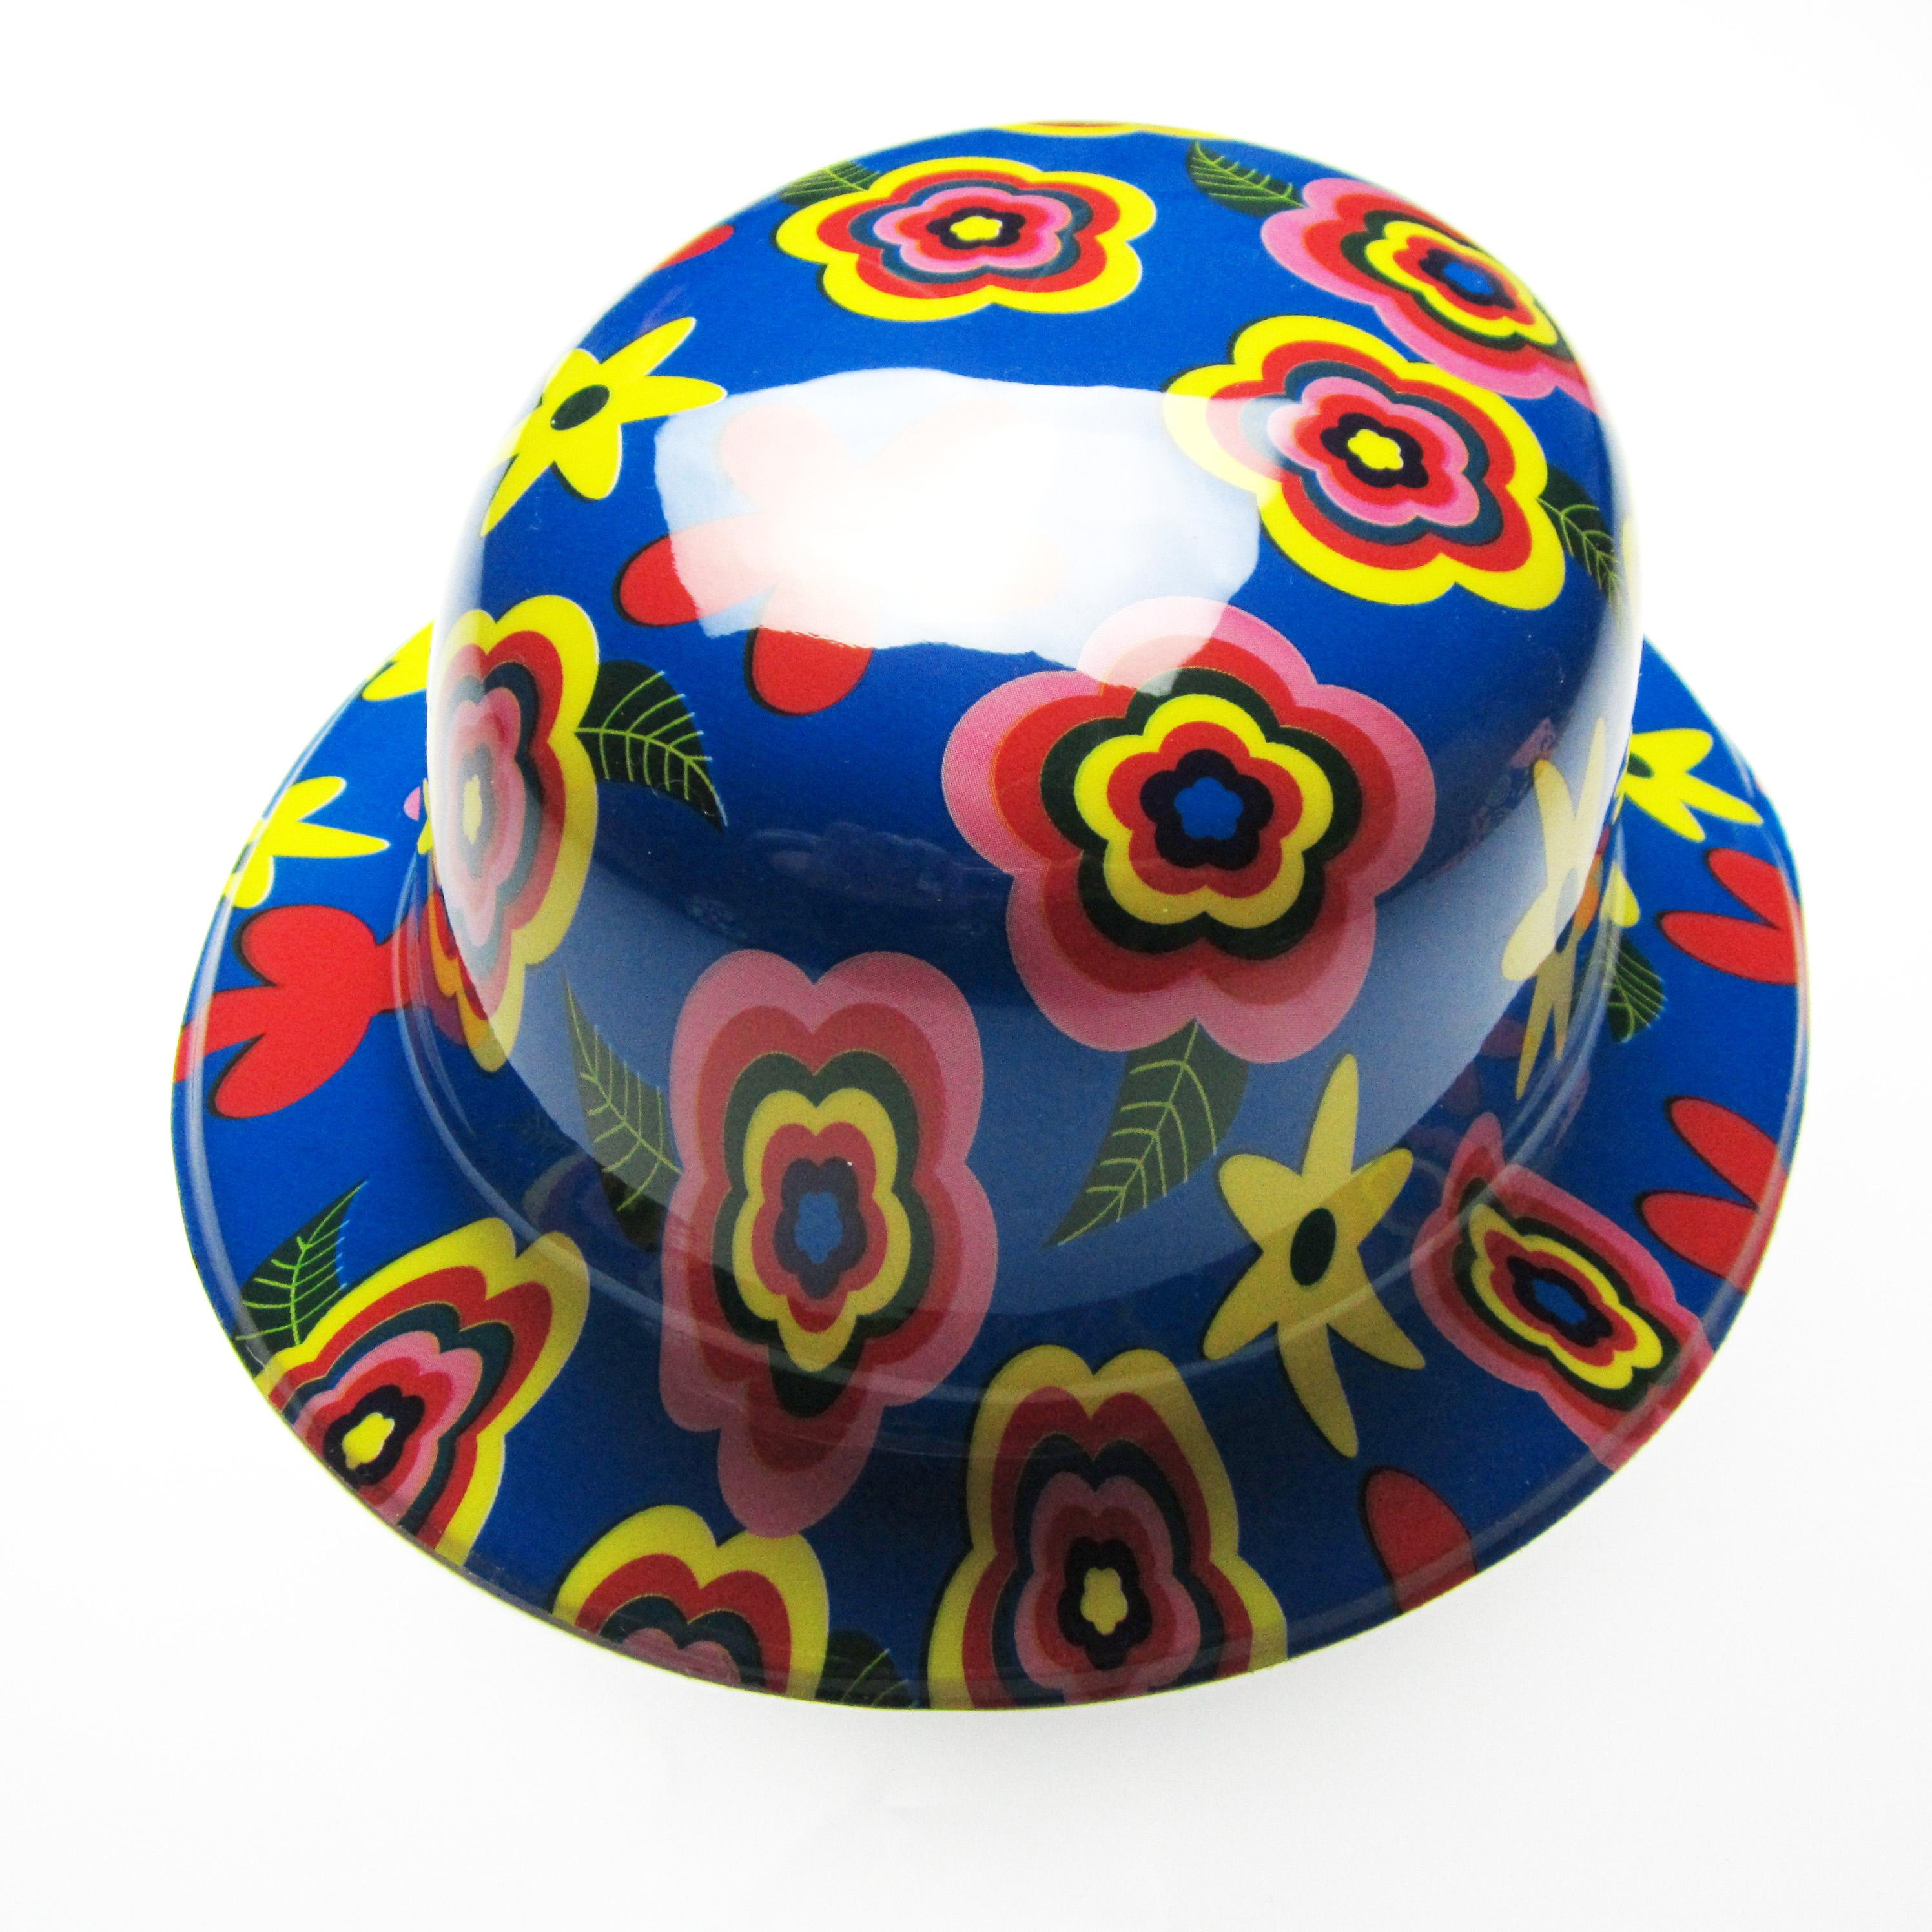 Plastic skullcaps performances hat summer vacation scenic Hot Products vase cap wholesale foot word cup